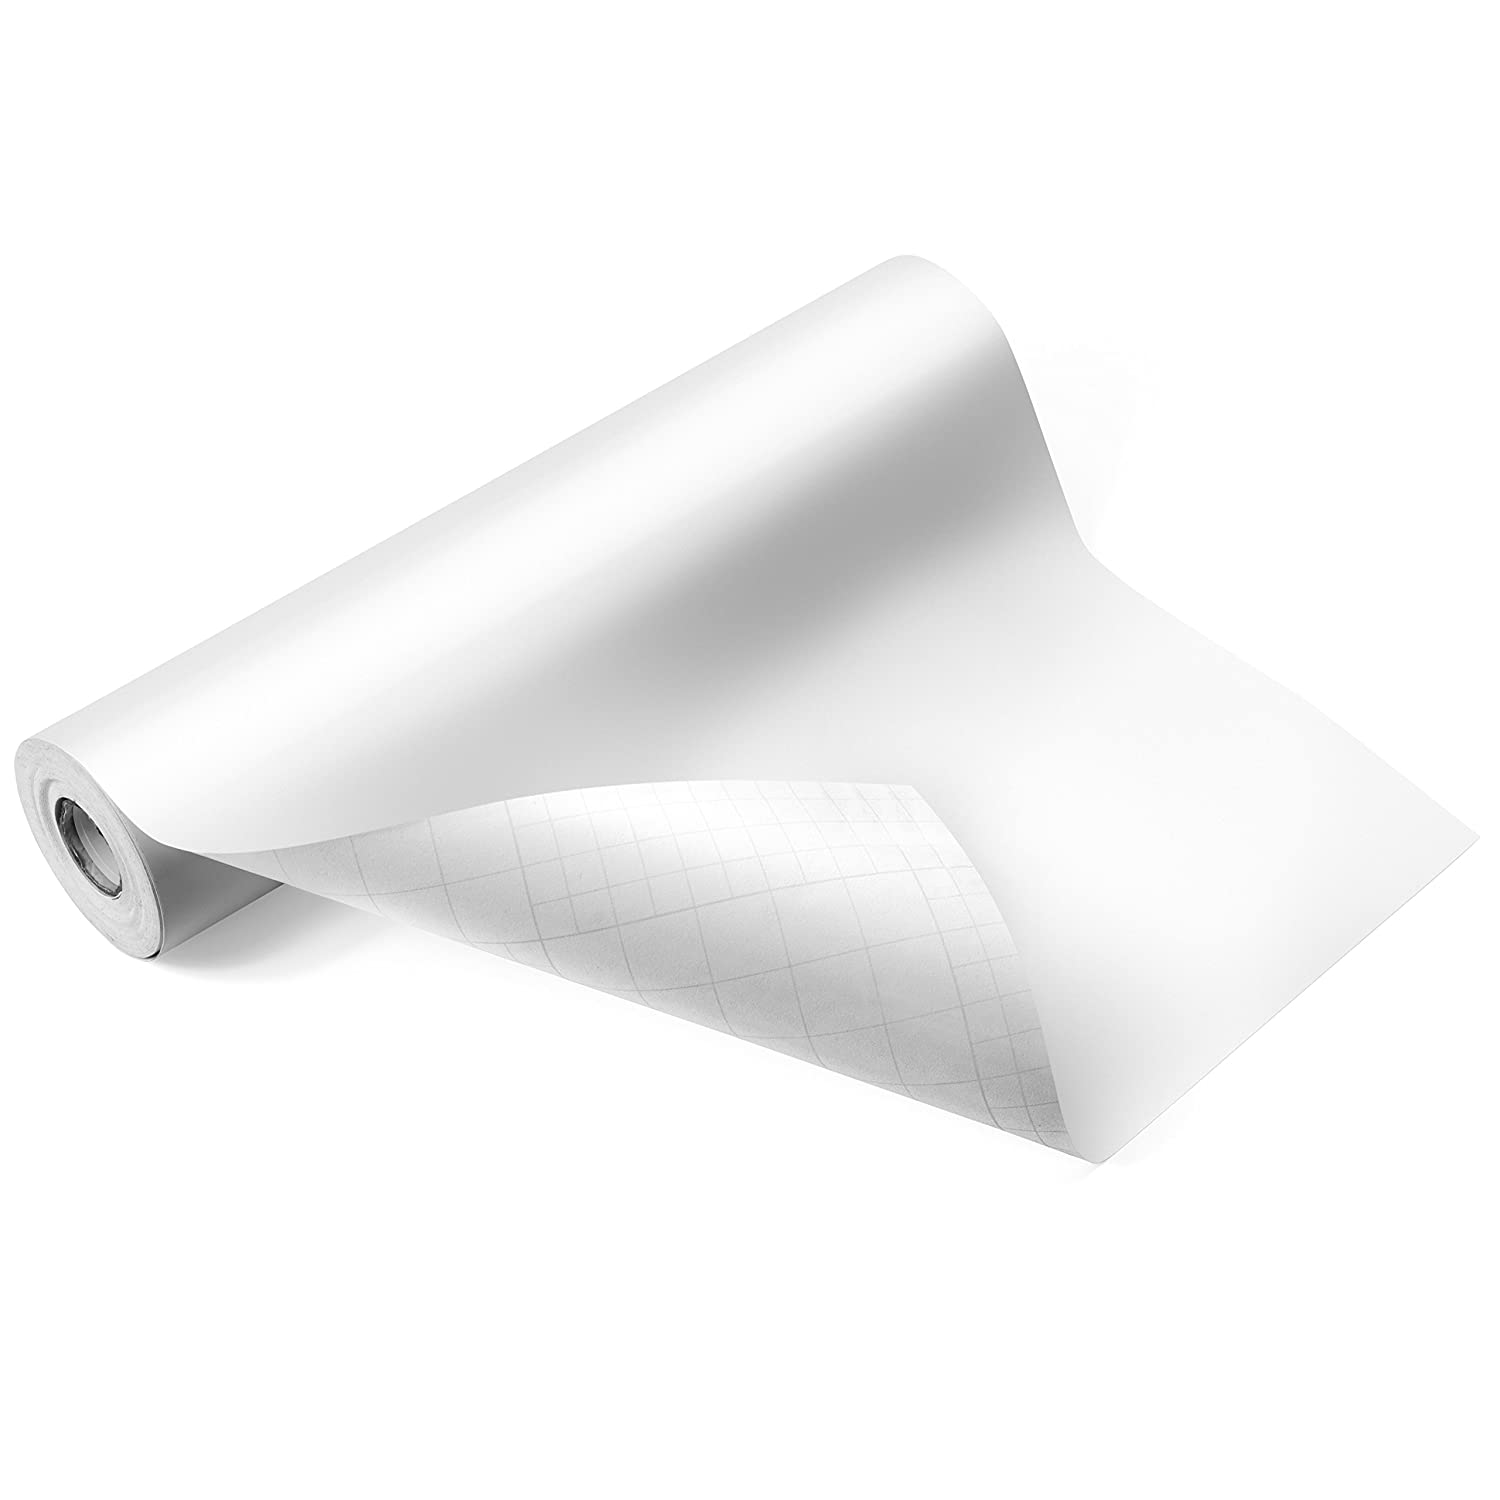 "EZ Craft USA White Vinyl Wrap Works with Cricut and Other Cutters 12/""x40FT White Vinyl Sheets are The BEST Vynil HUGE Glossy Adhesive Permanent White Vinyl Rolls Glossy White Adhesive Vinyl Roll"